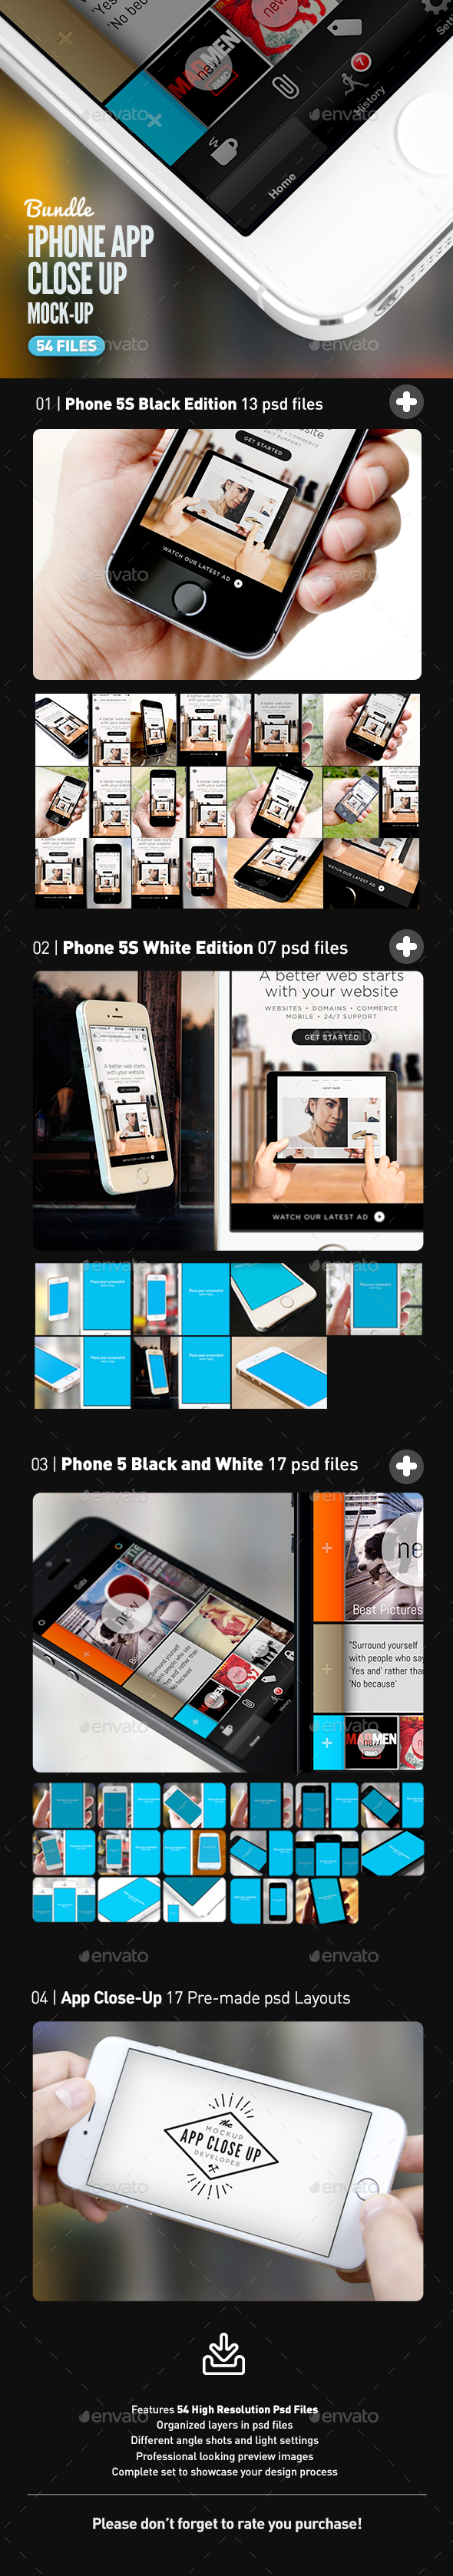 iPhone App UI Close-Up Mock-Up Bundle - Mobile Displays